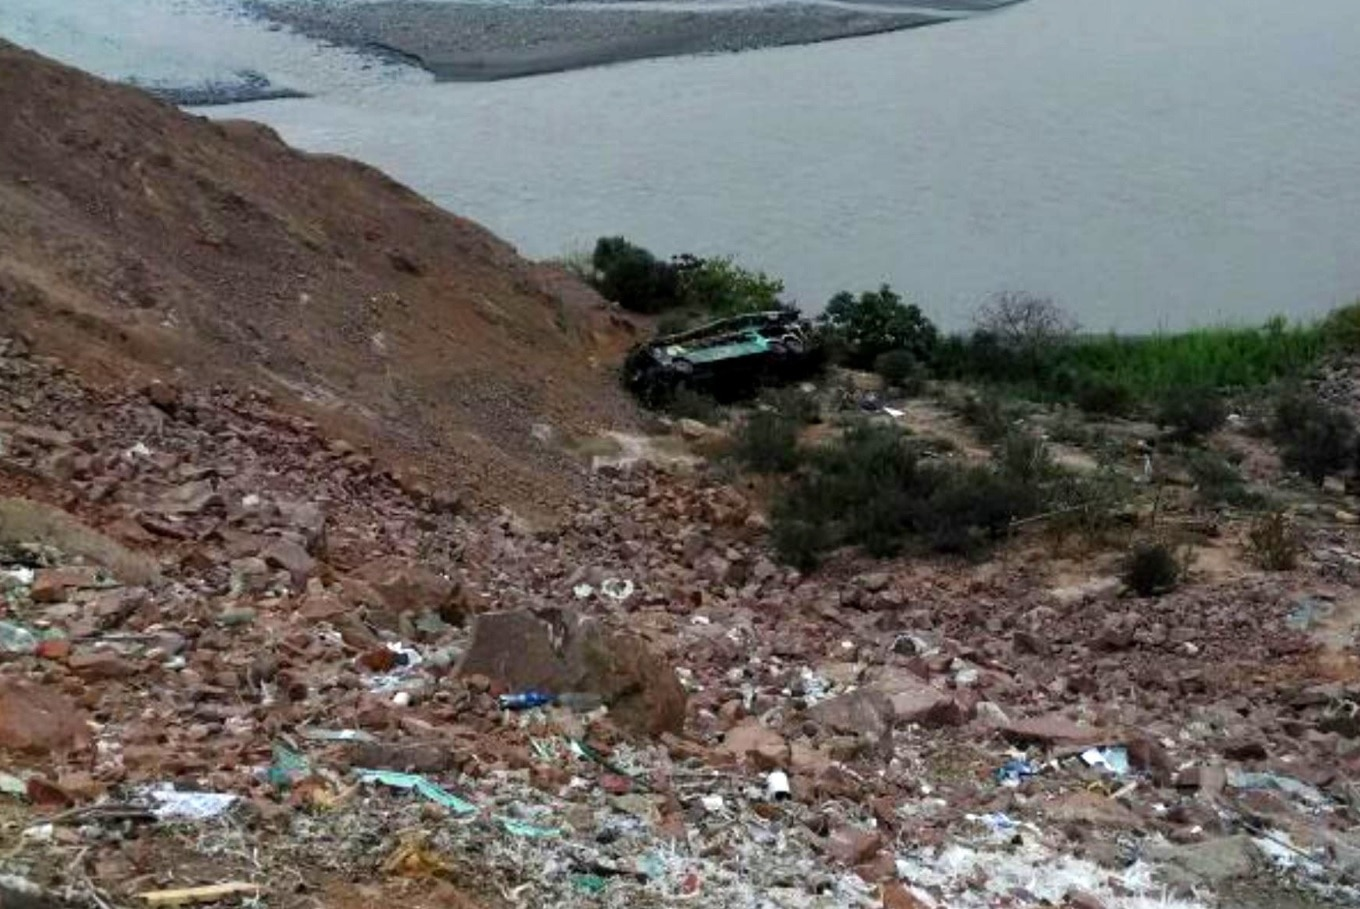 At least 44 killed as double-decker bus plunges off cliff in Peru